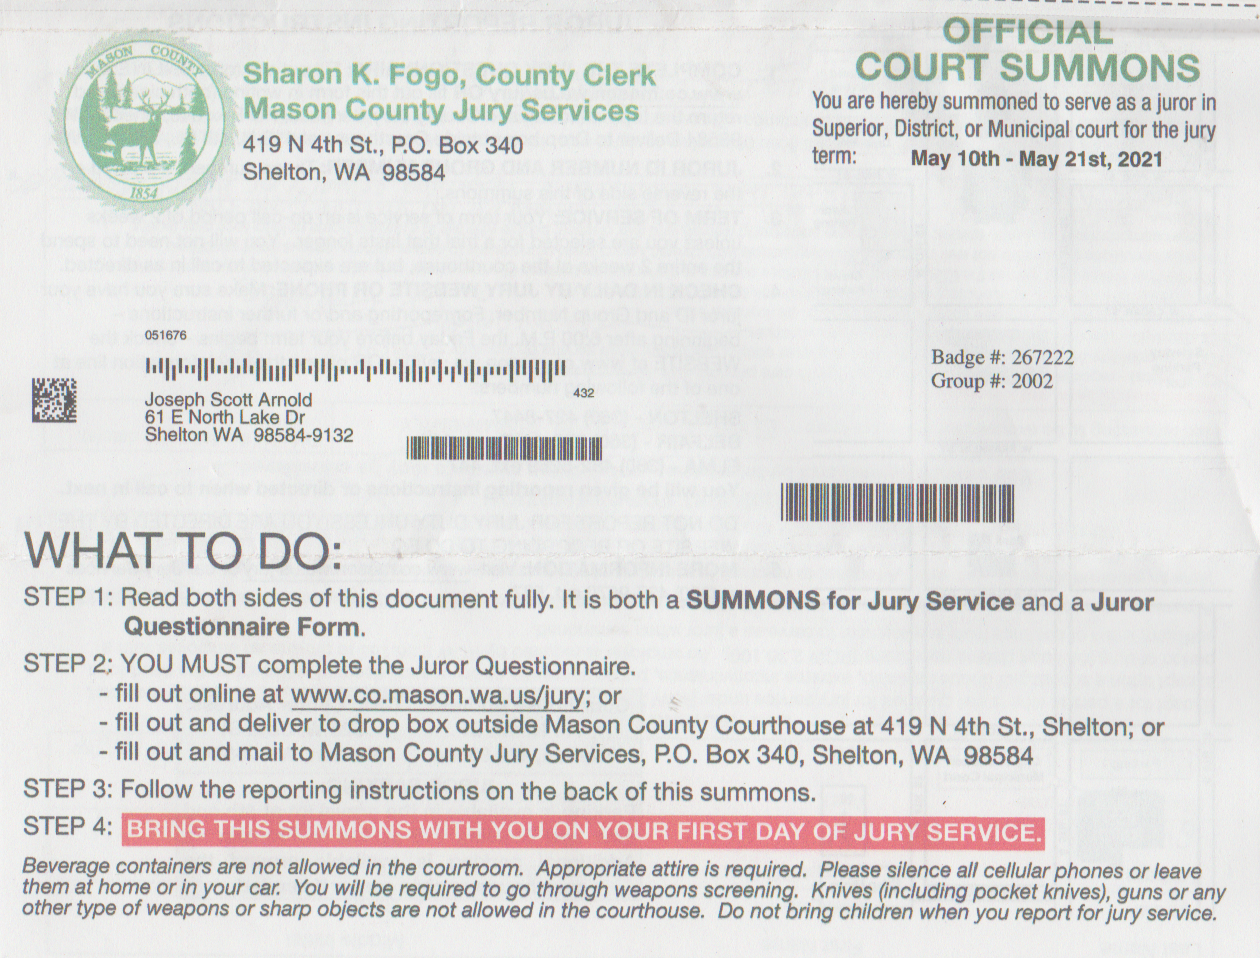 2021-04-11 - Sunday - 05:30 PM LMS - Jury Duty Permanent Exemption, 2nd time requested, 1st time in 2020, maybe not permanent exemption requested last time-3.png